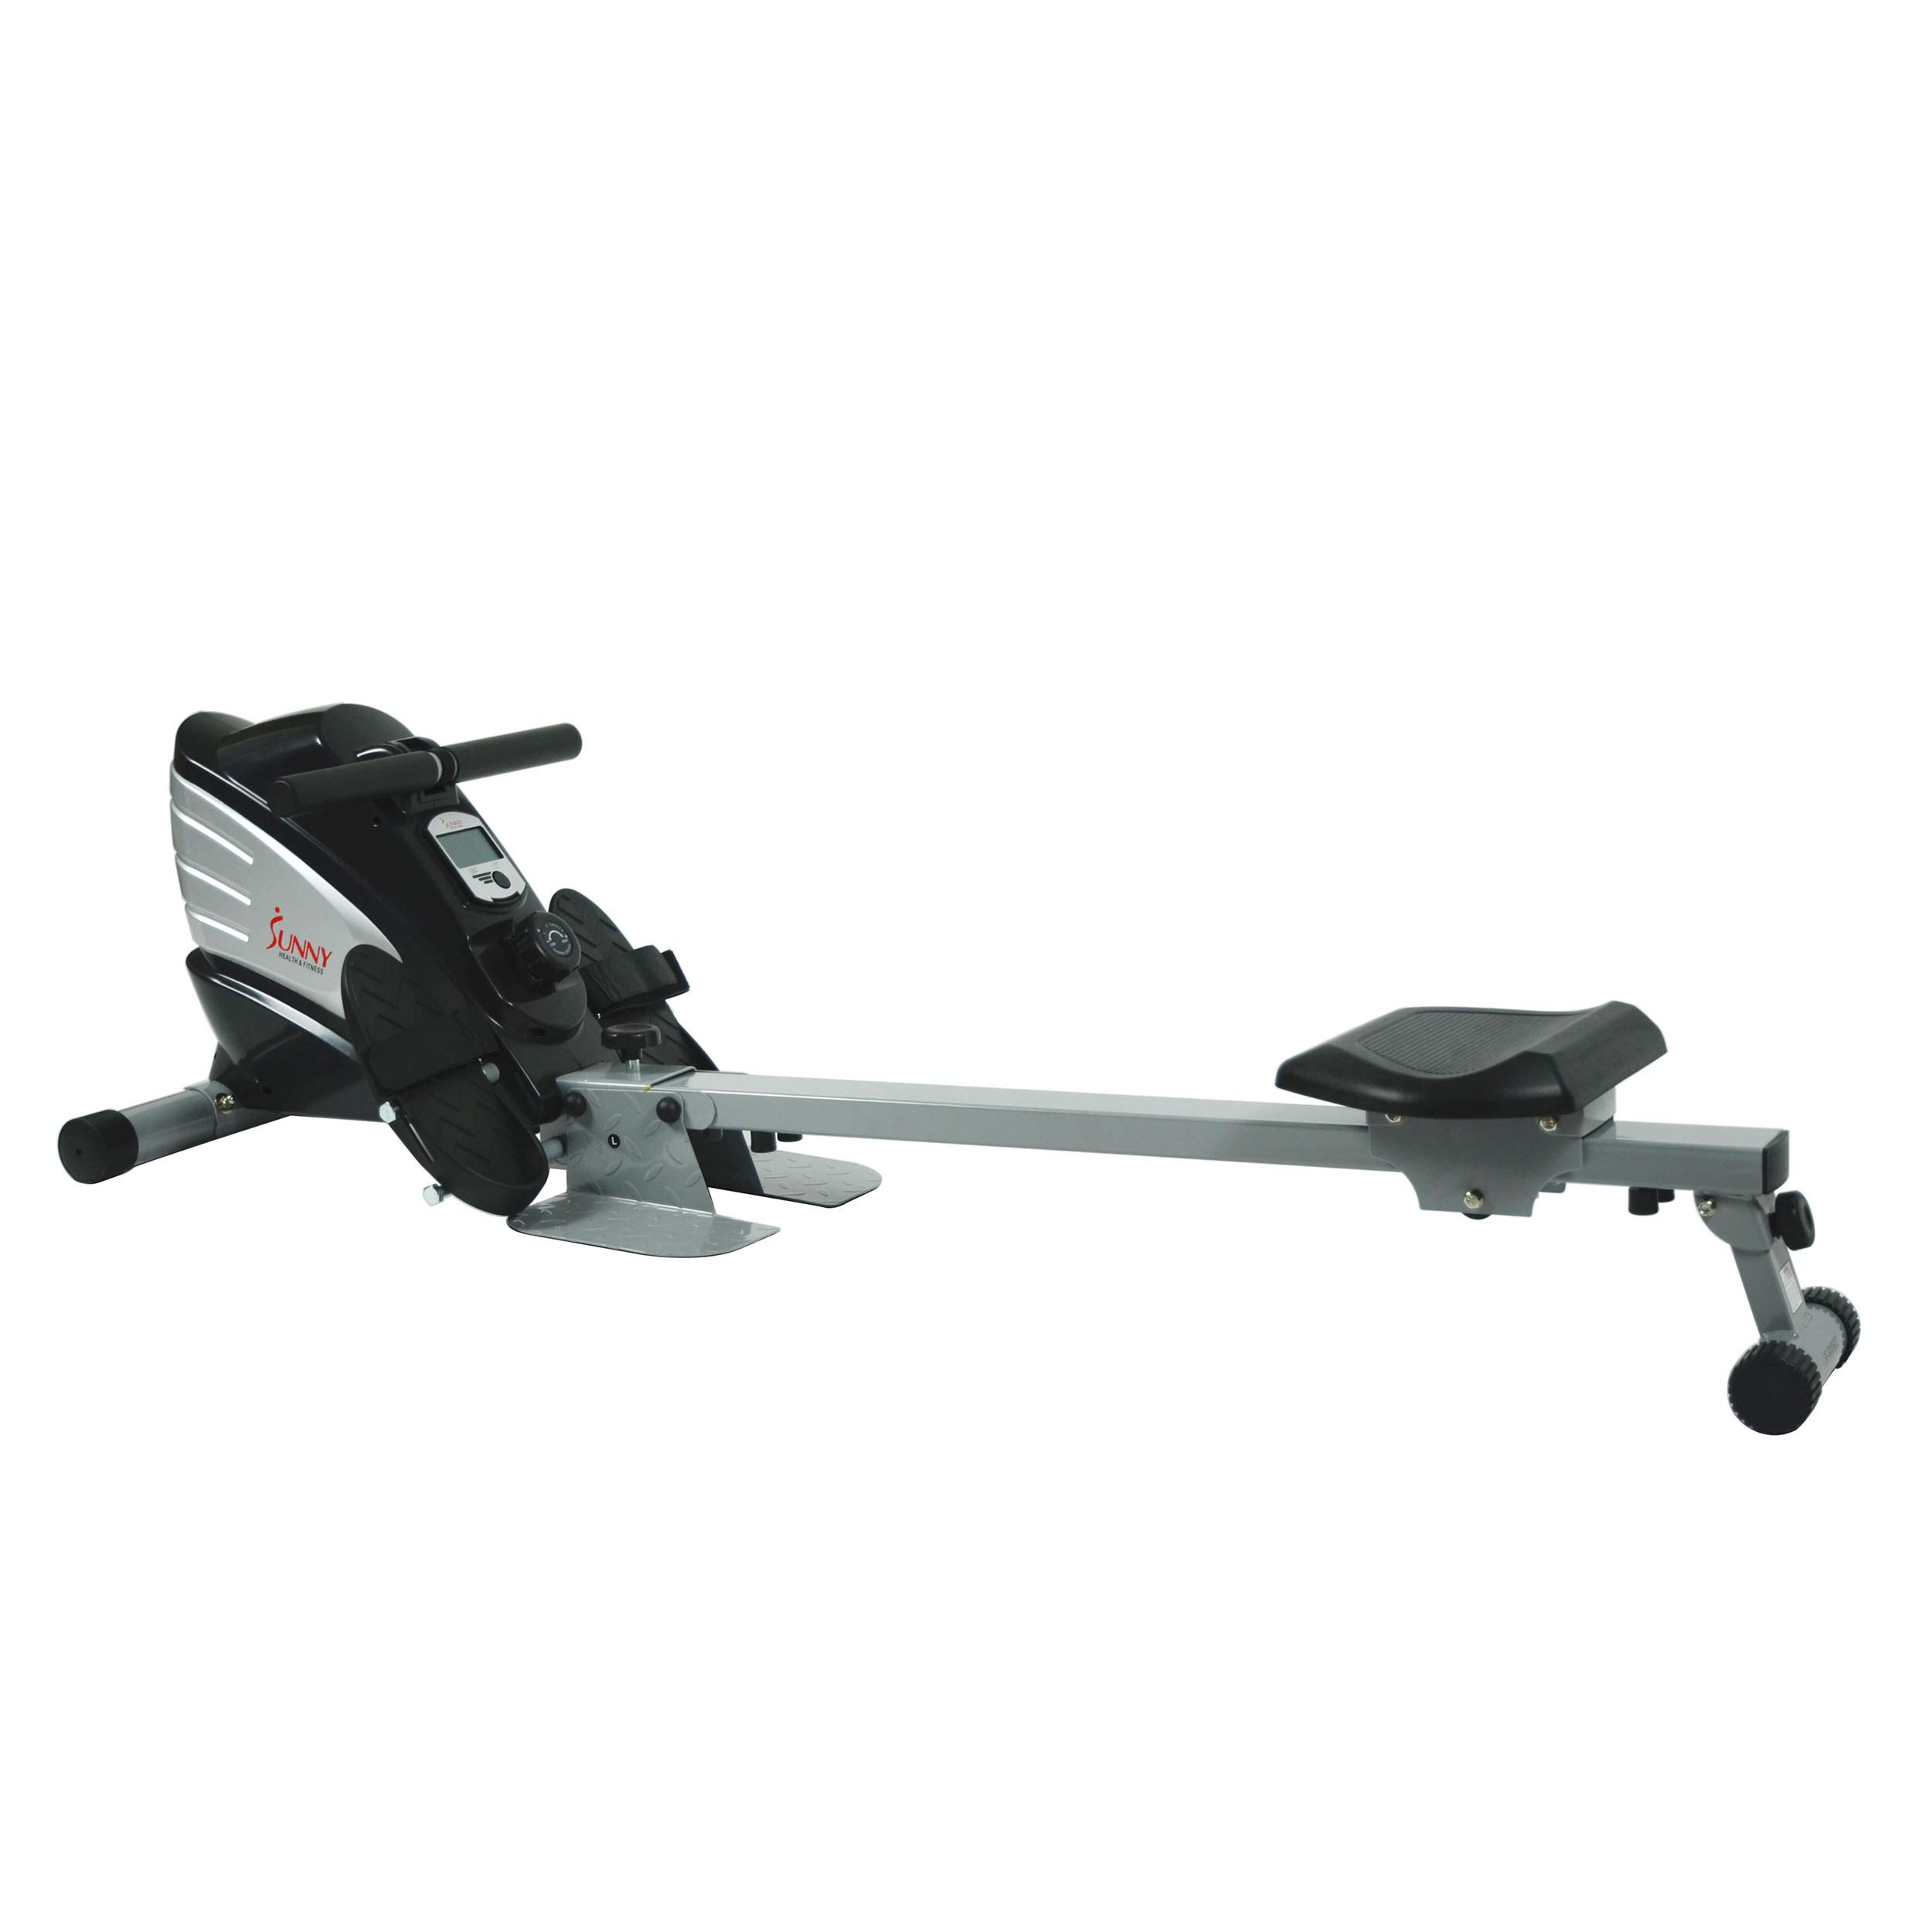 Sunny Health & Fitness Dual Function Magnetic Rowing Machine w/ Digital Monitor, Multi-Exercise Step Plates and Foldable -  SF-RW5622 by Sunny Health & Fitness (Image #3)